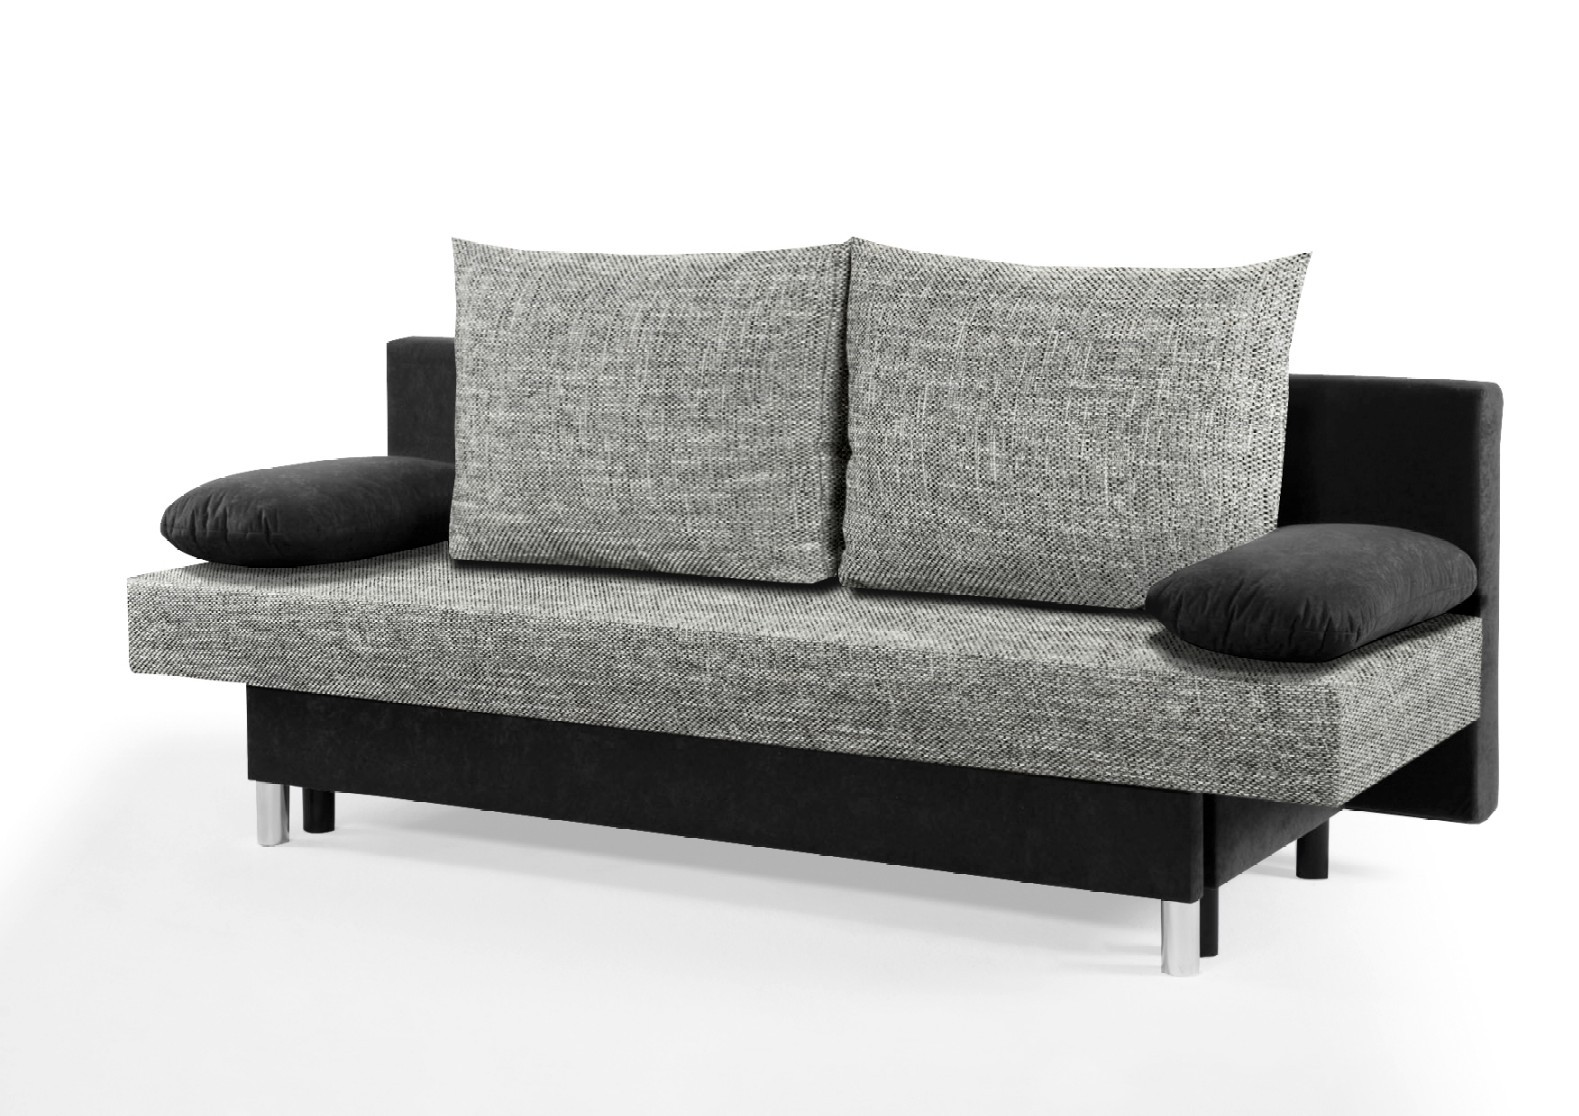 schlafsofa 160x200 liegeflche simple reizend schlafsofa cm breit with schlafsofa 160x200. Black Bedroom Furniture Sets. Home Design Ideas